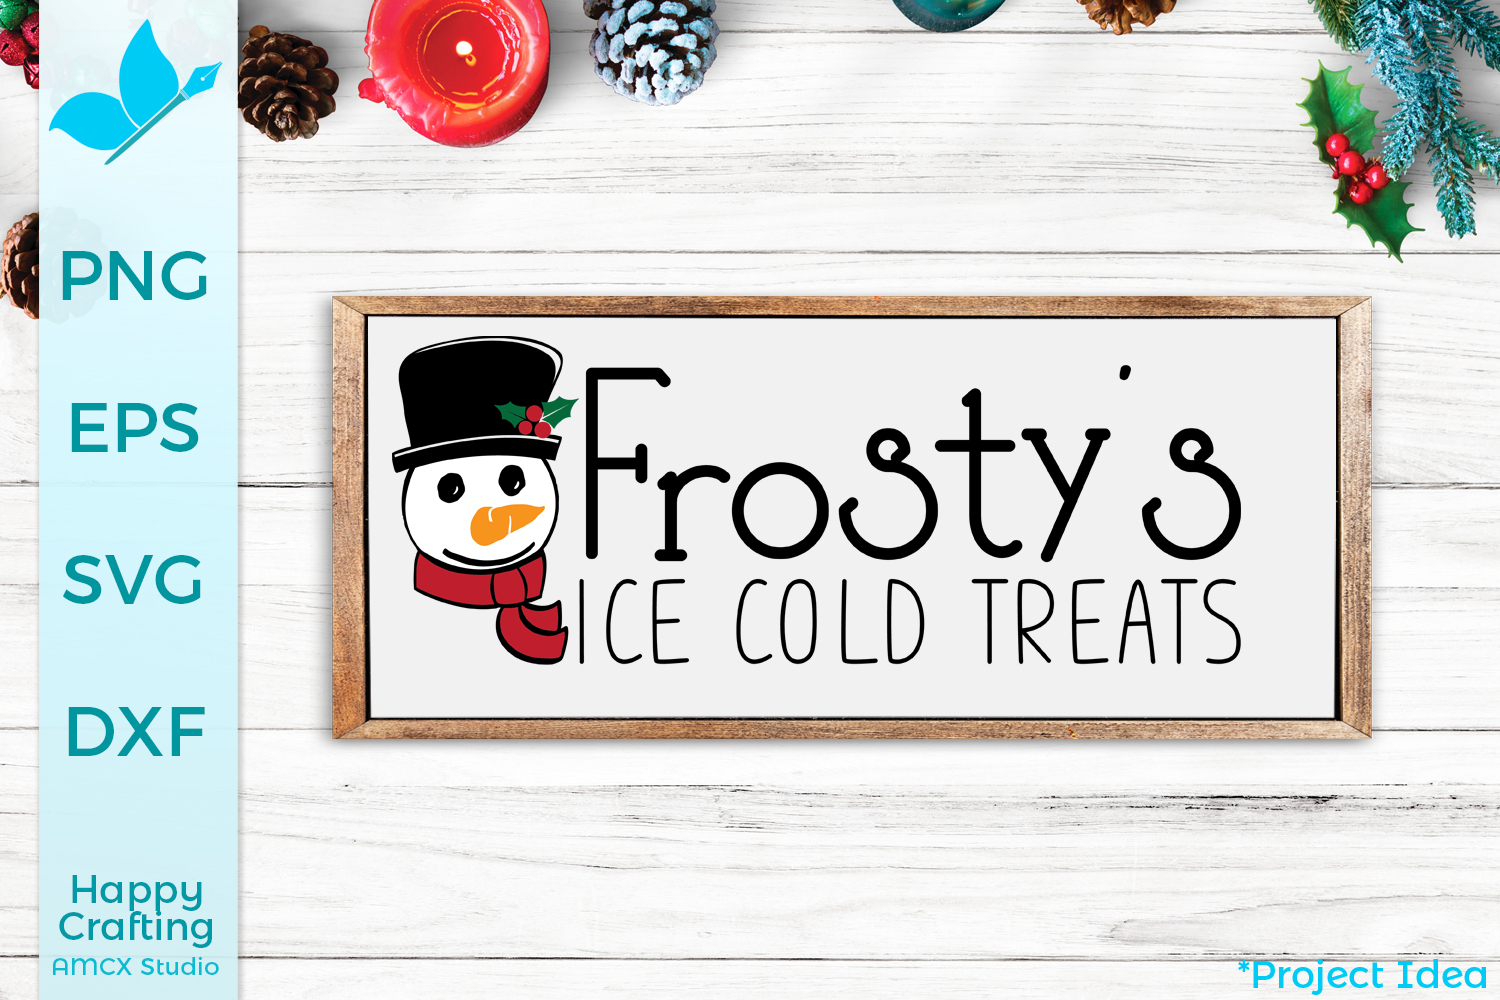 Frosty's Ice Cold Treats - A Cute Christmas Sign Cut File example image 1